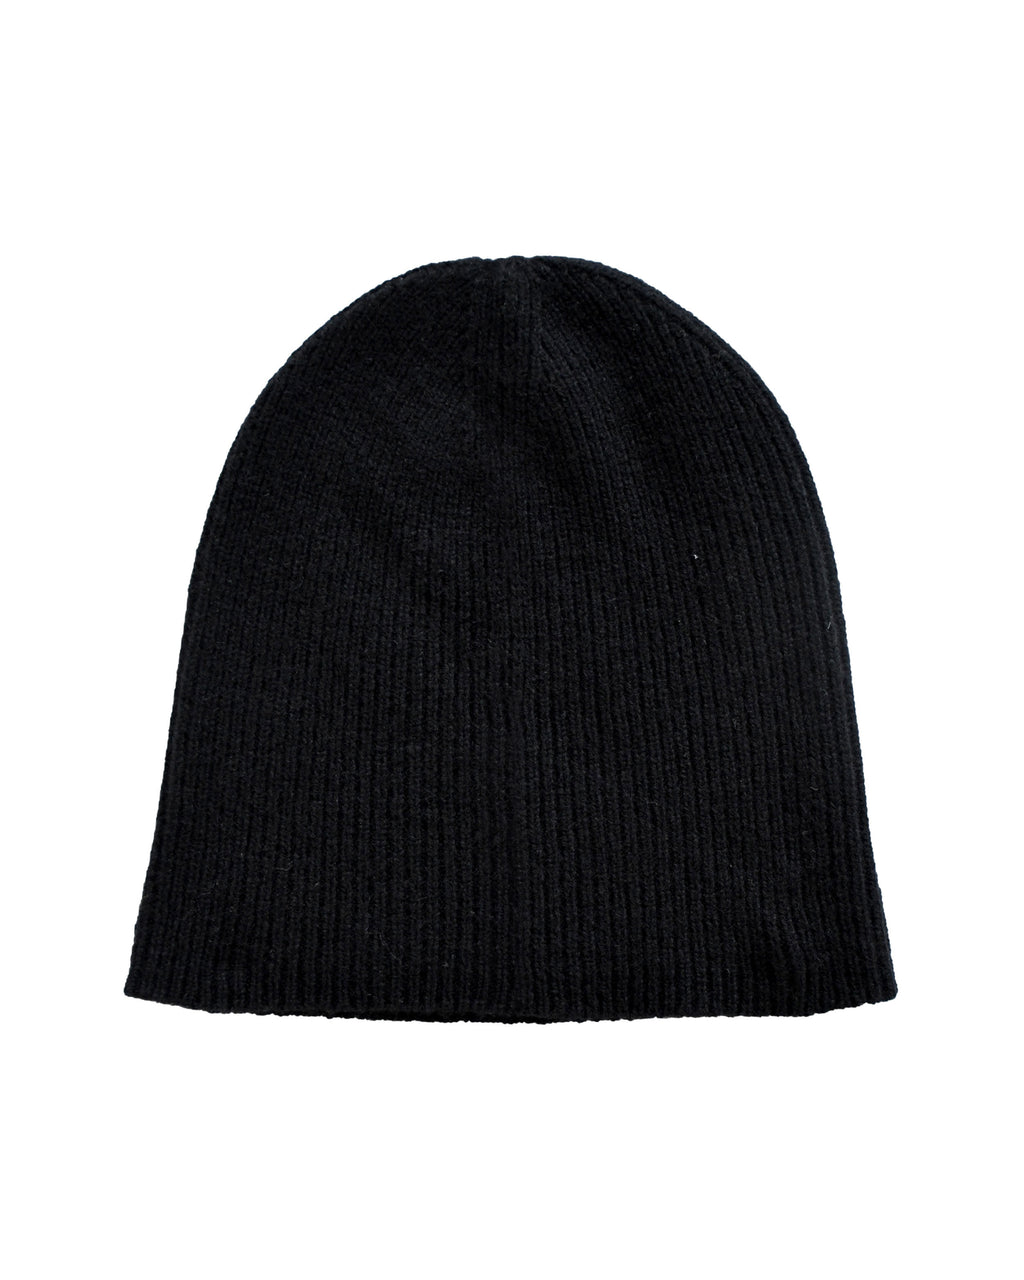 CA18508 - CASHMERE HAT - accessories - winter wear - Every winter ensemble needs a warm but cute hat. This one is crafted from 100% cashmere and can be worn flat or with the hem flipped up for a classic beanie look. Add 1 line break Stylist tip: Match your hat back to your scarf for a complete look.